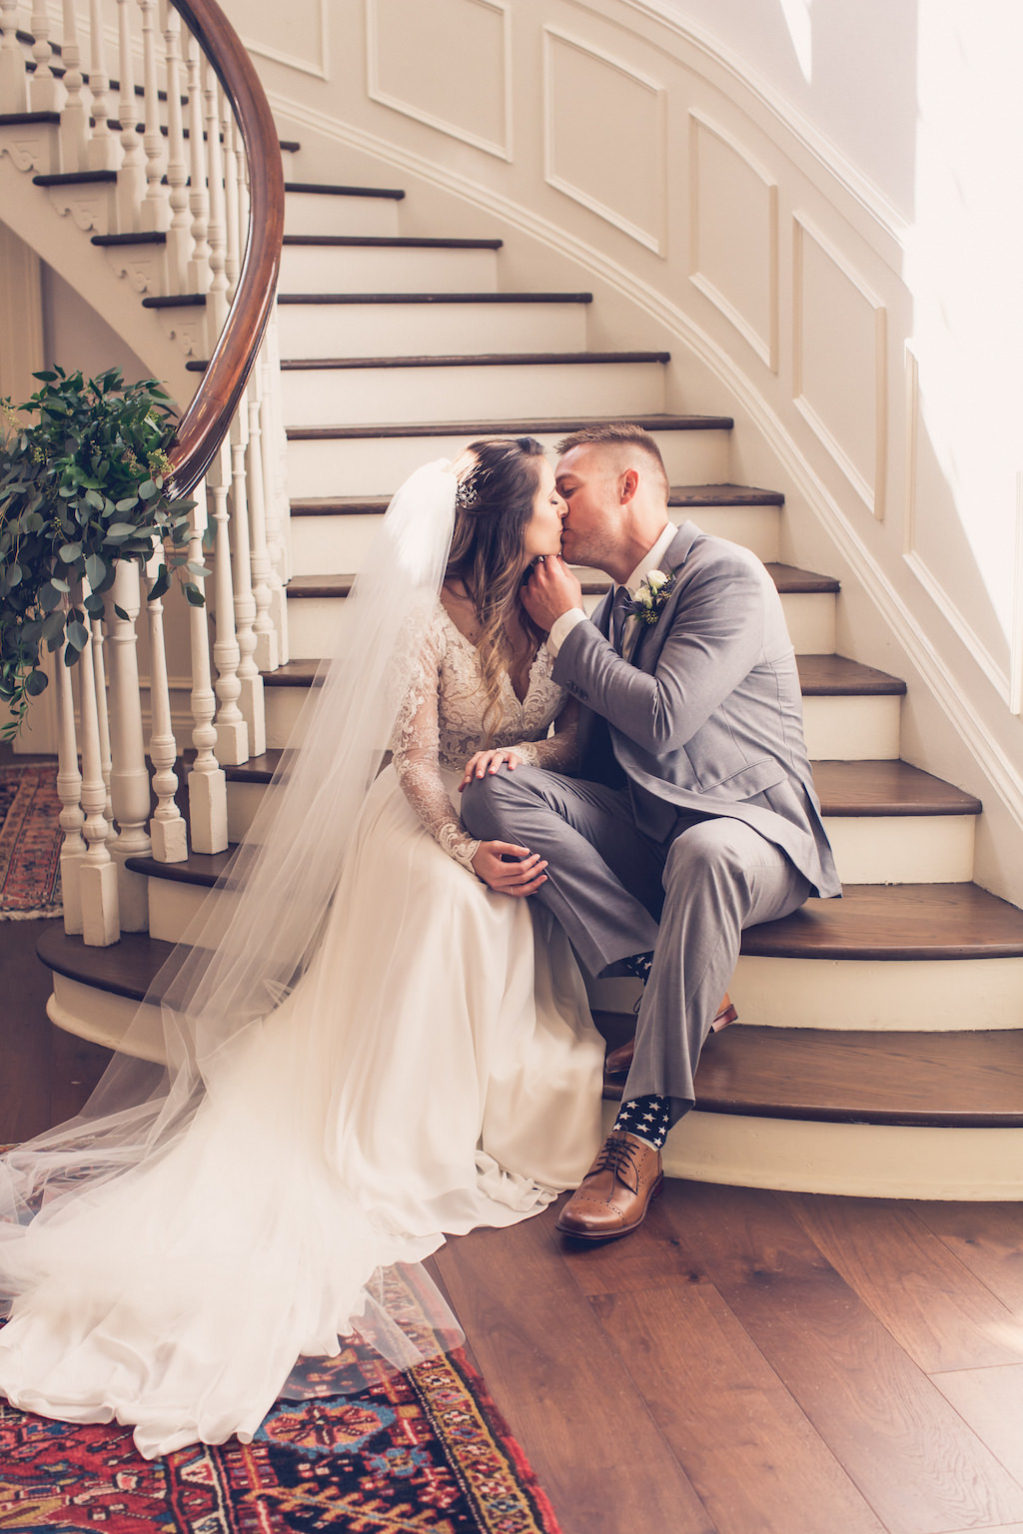 Simple Chic Romantic, South Tampa Bride and Groom Wedding Portrait on Staircase, Bride with Cathedral Length Veil | Wedding Venue Tampa Yacht Club | Florida Luxury Wedding Photographer Luxe Light Images